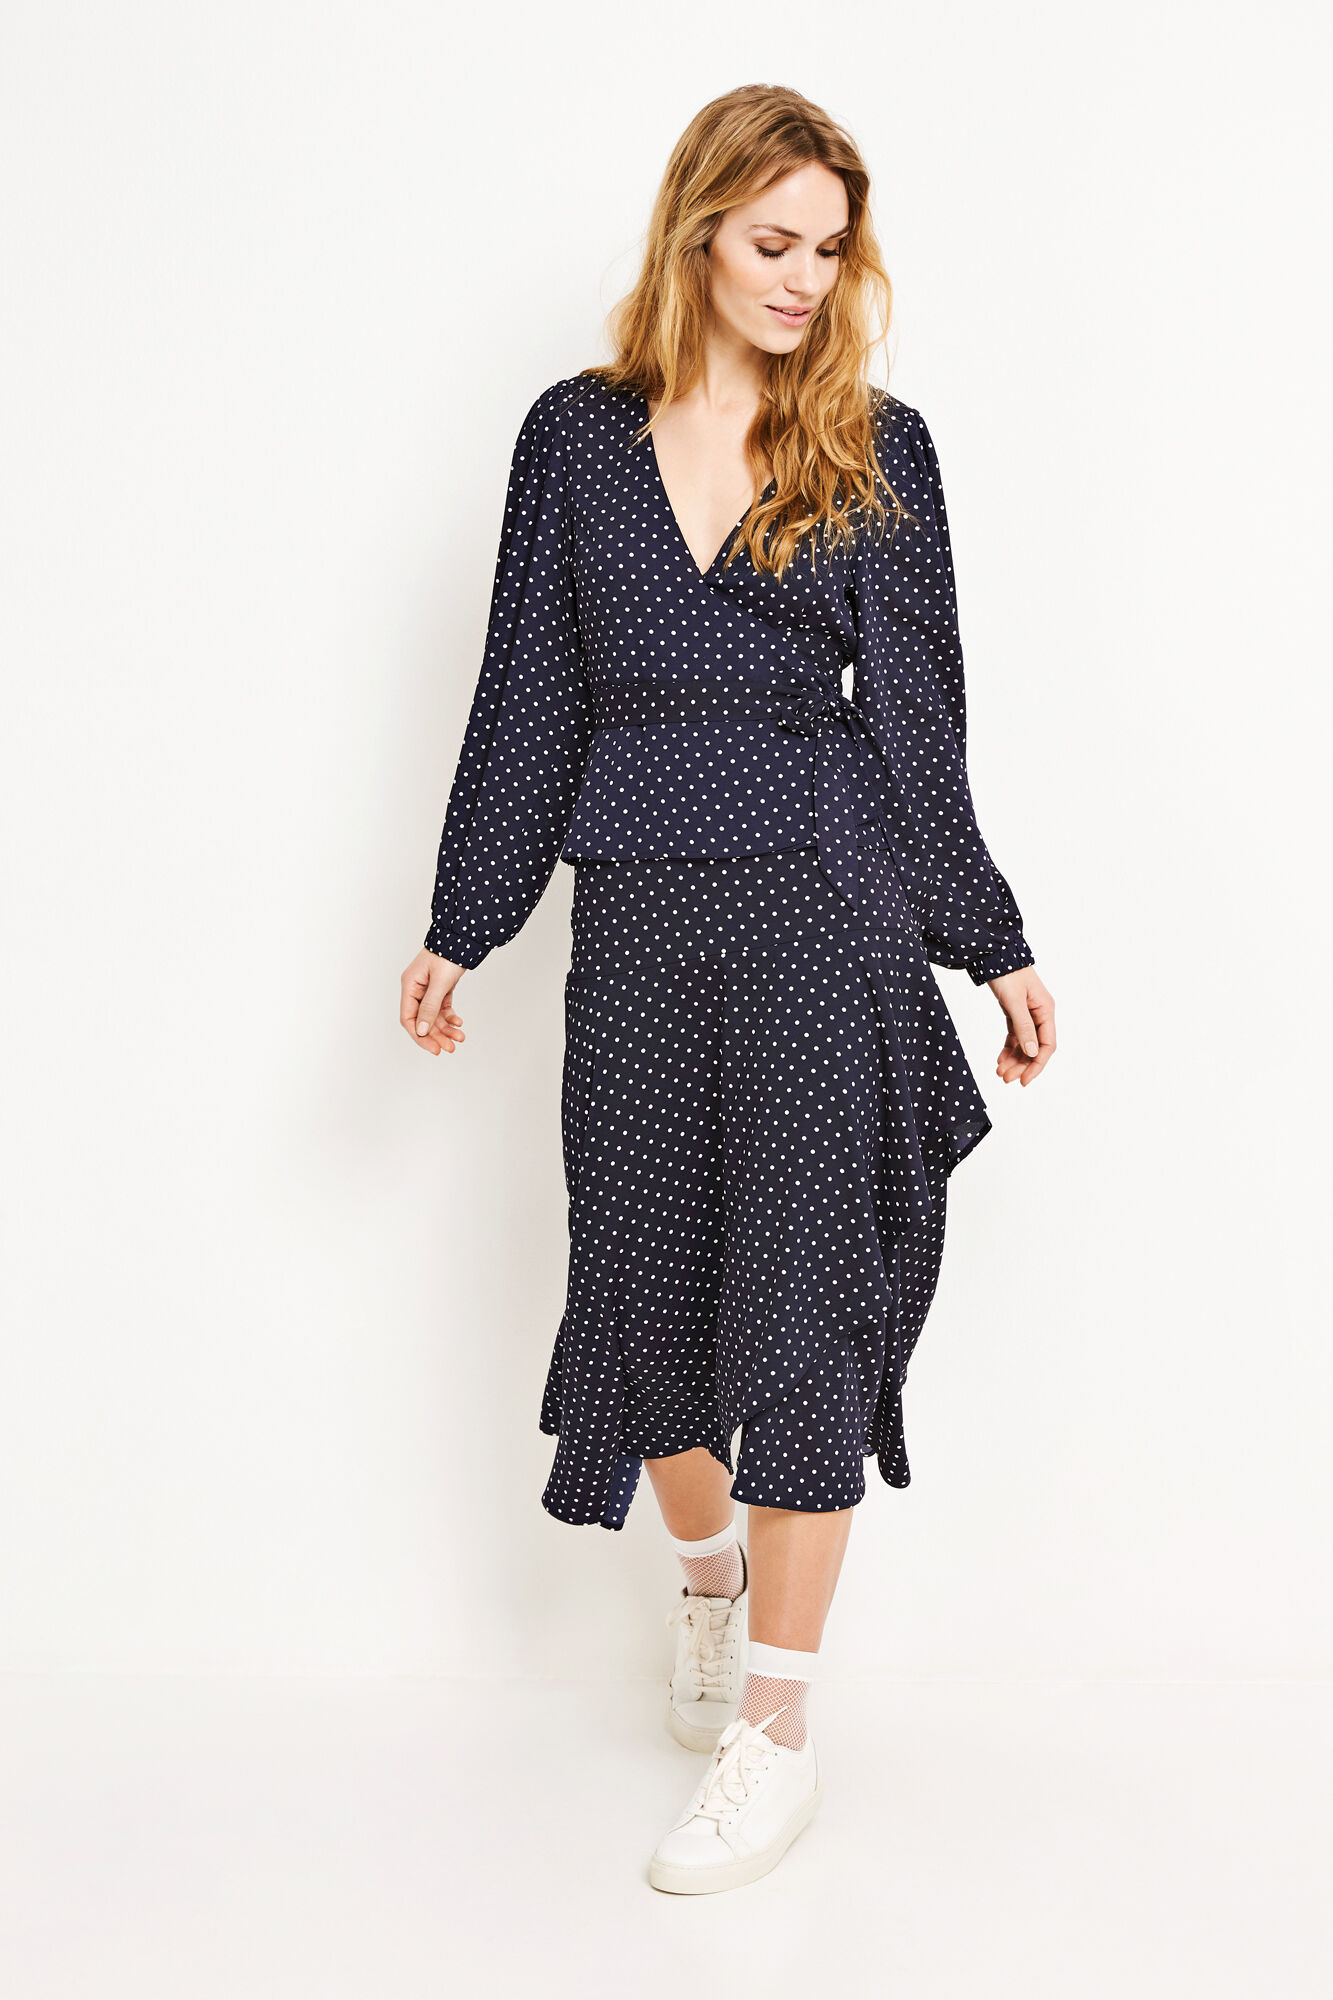 ENGUM LS TOP AOP 6508, NAVY DOT SMALL